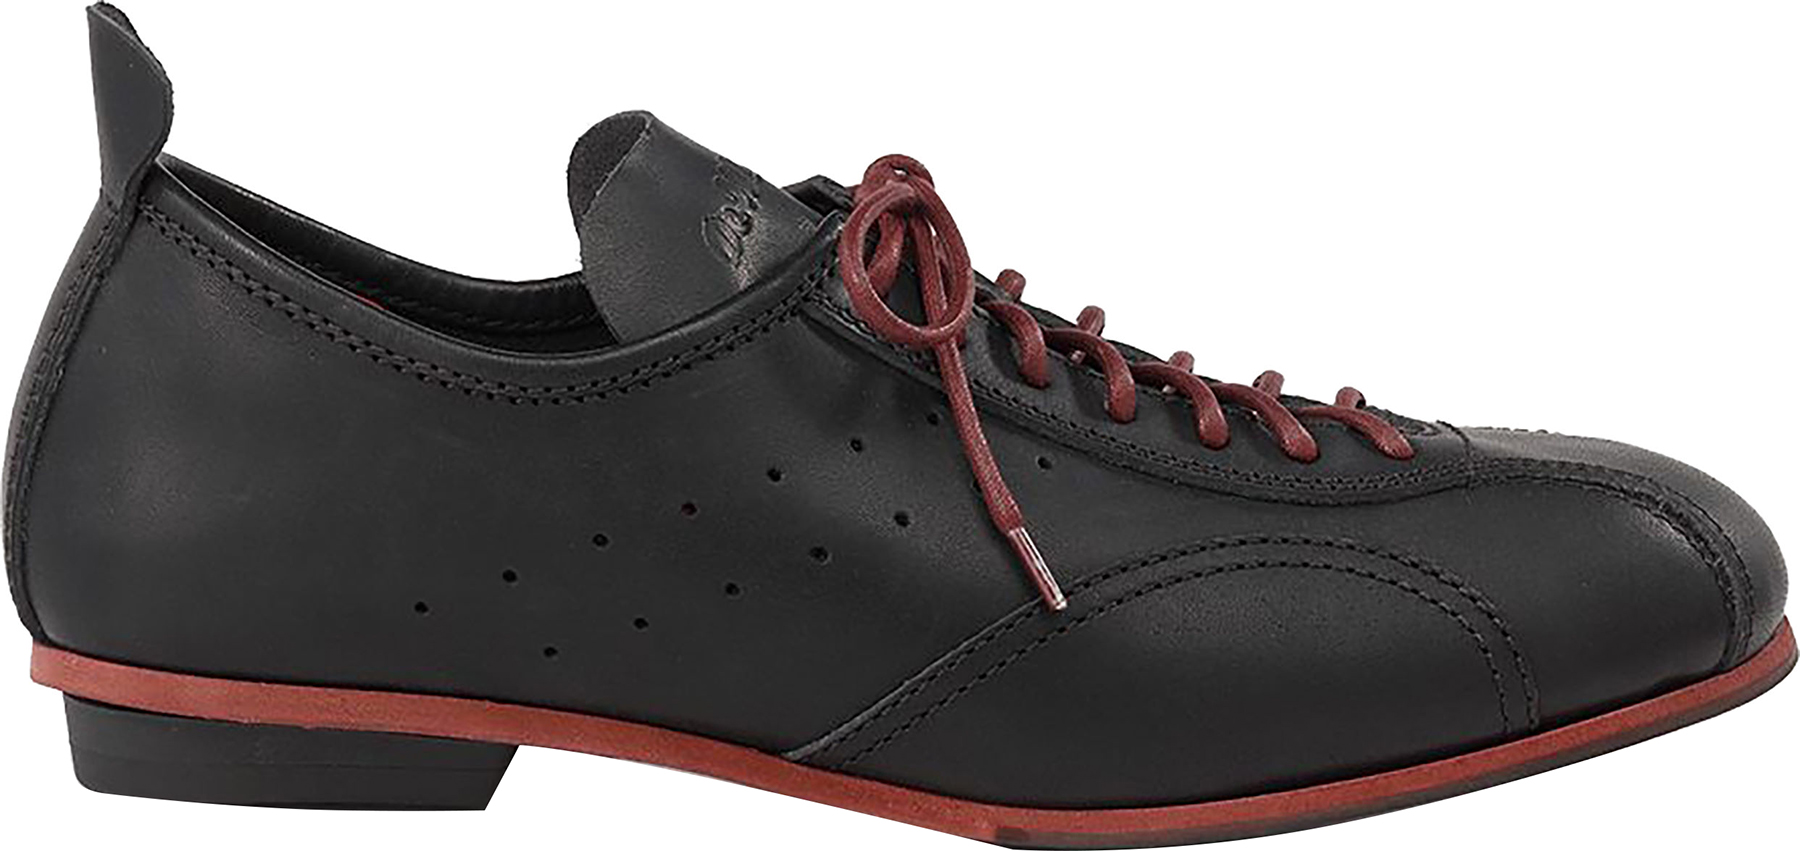 De Marchi Classic Pista Shoe SR | Shoes and overlays